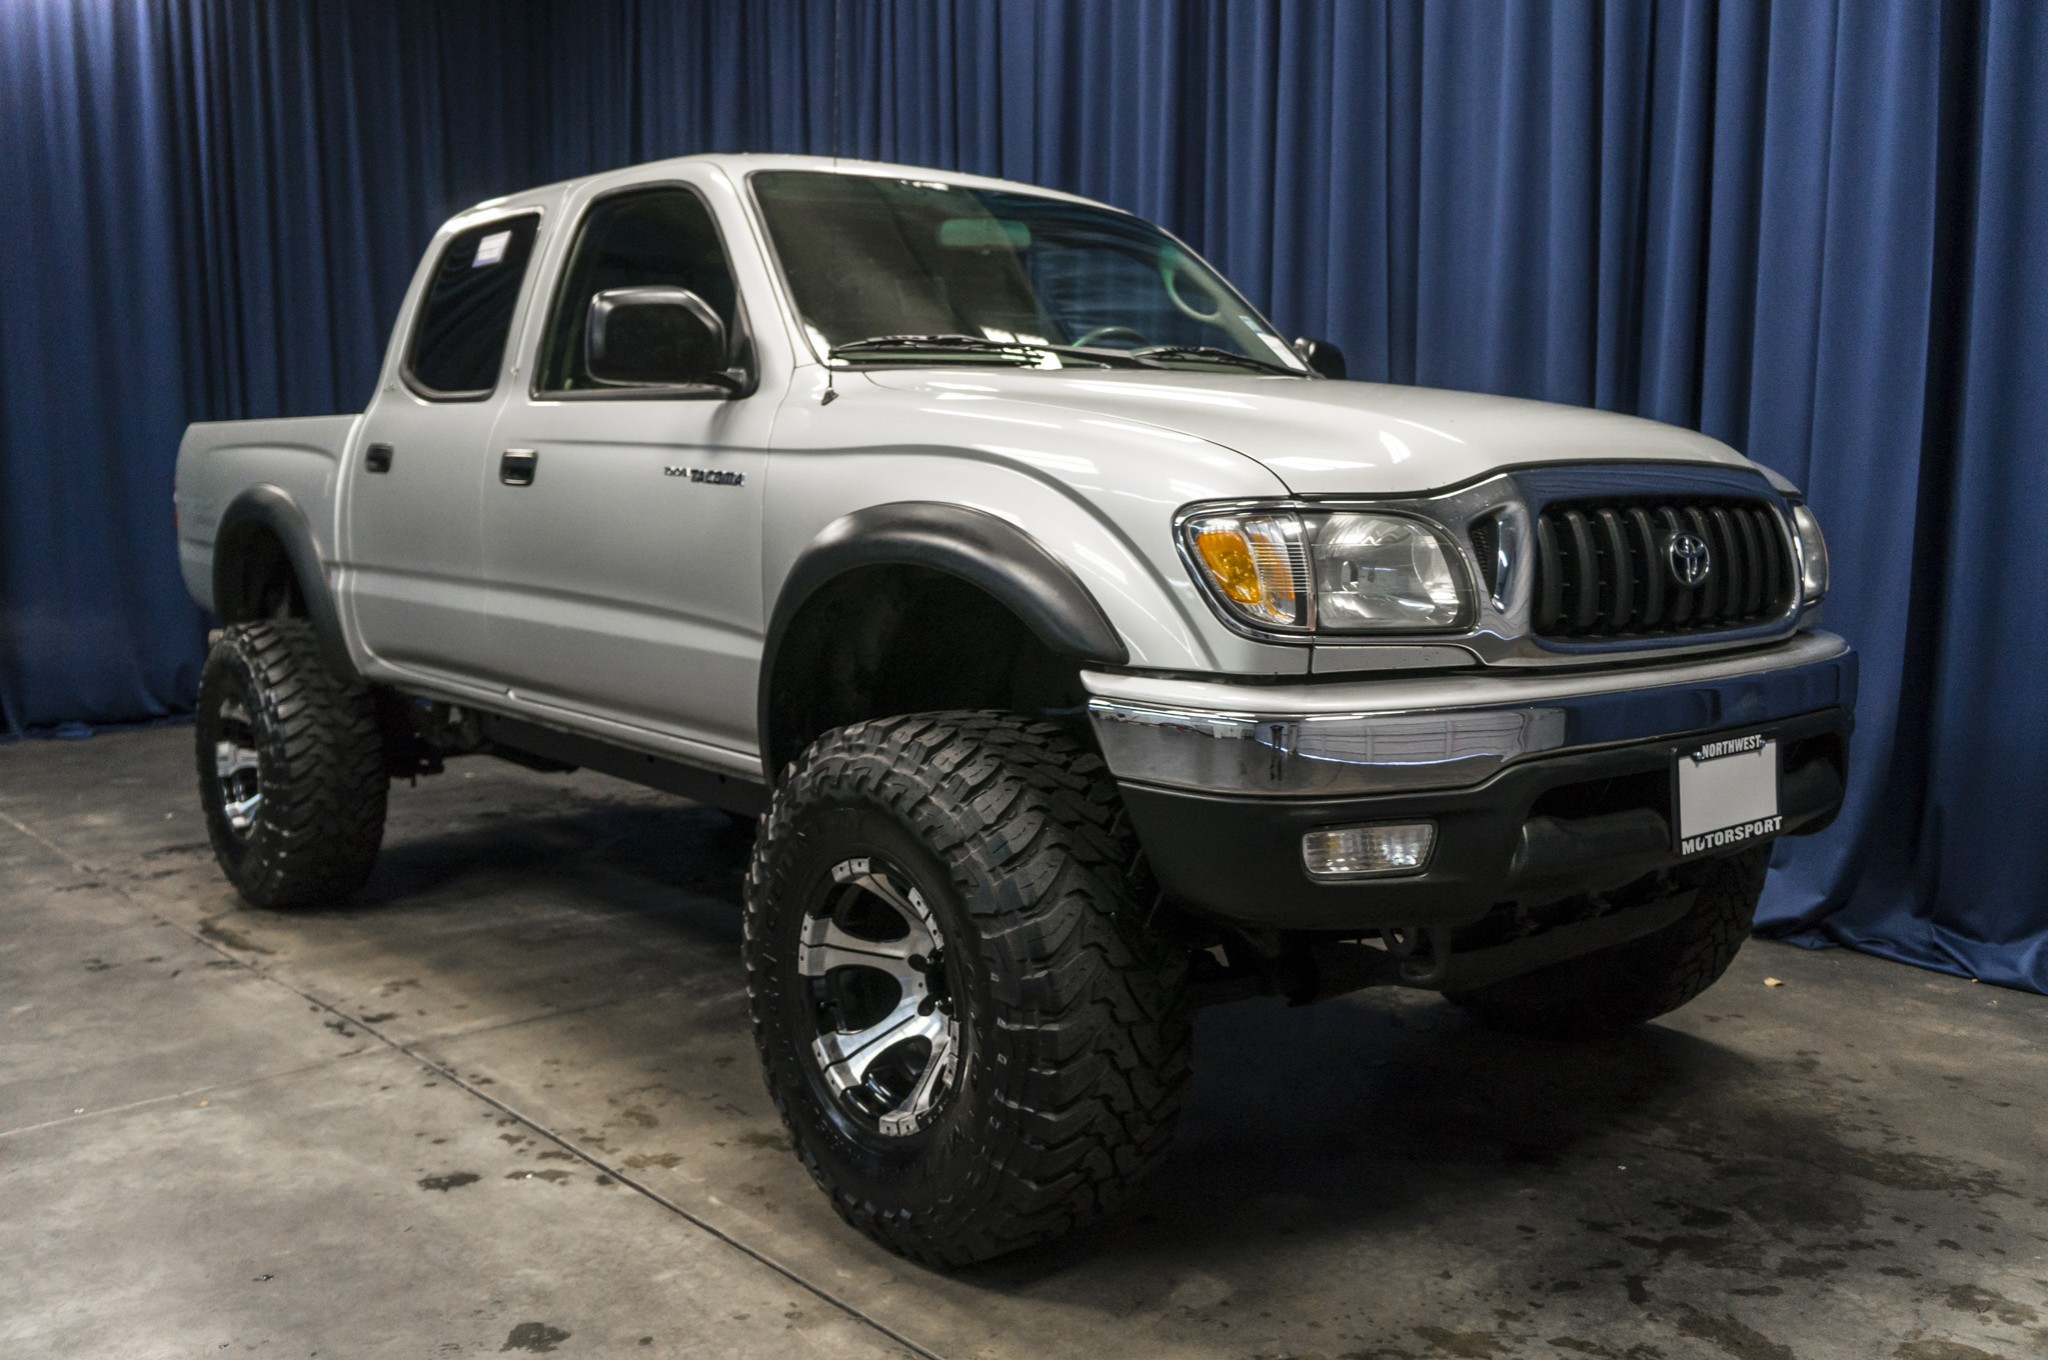 04 Tacoma Lifted >> Used Lifted 2004 Toyota Tacoma 4x4 Truck For Sale 33975c